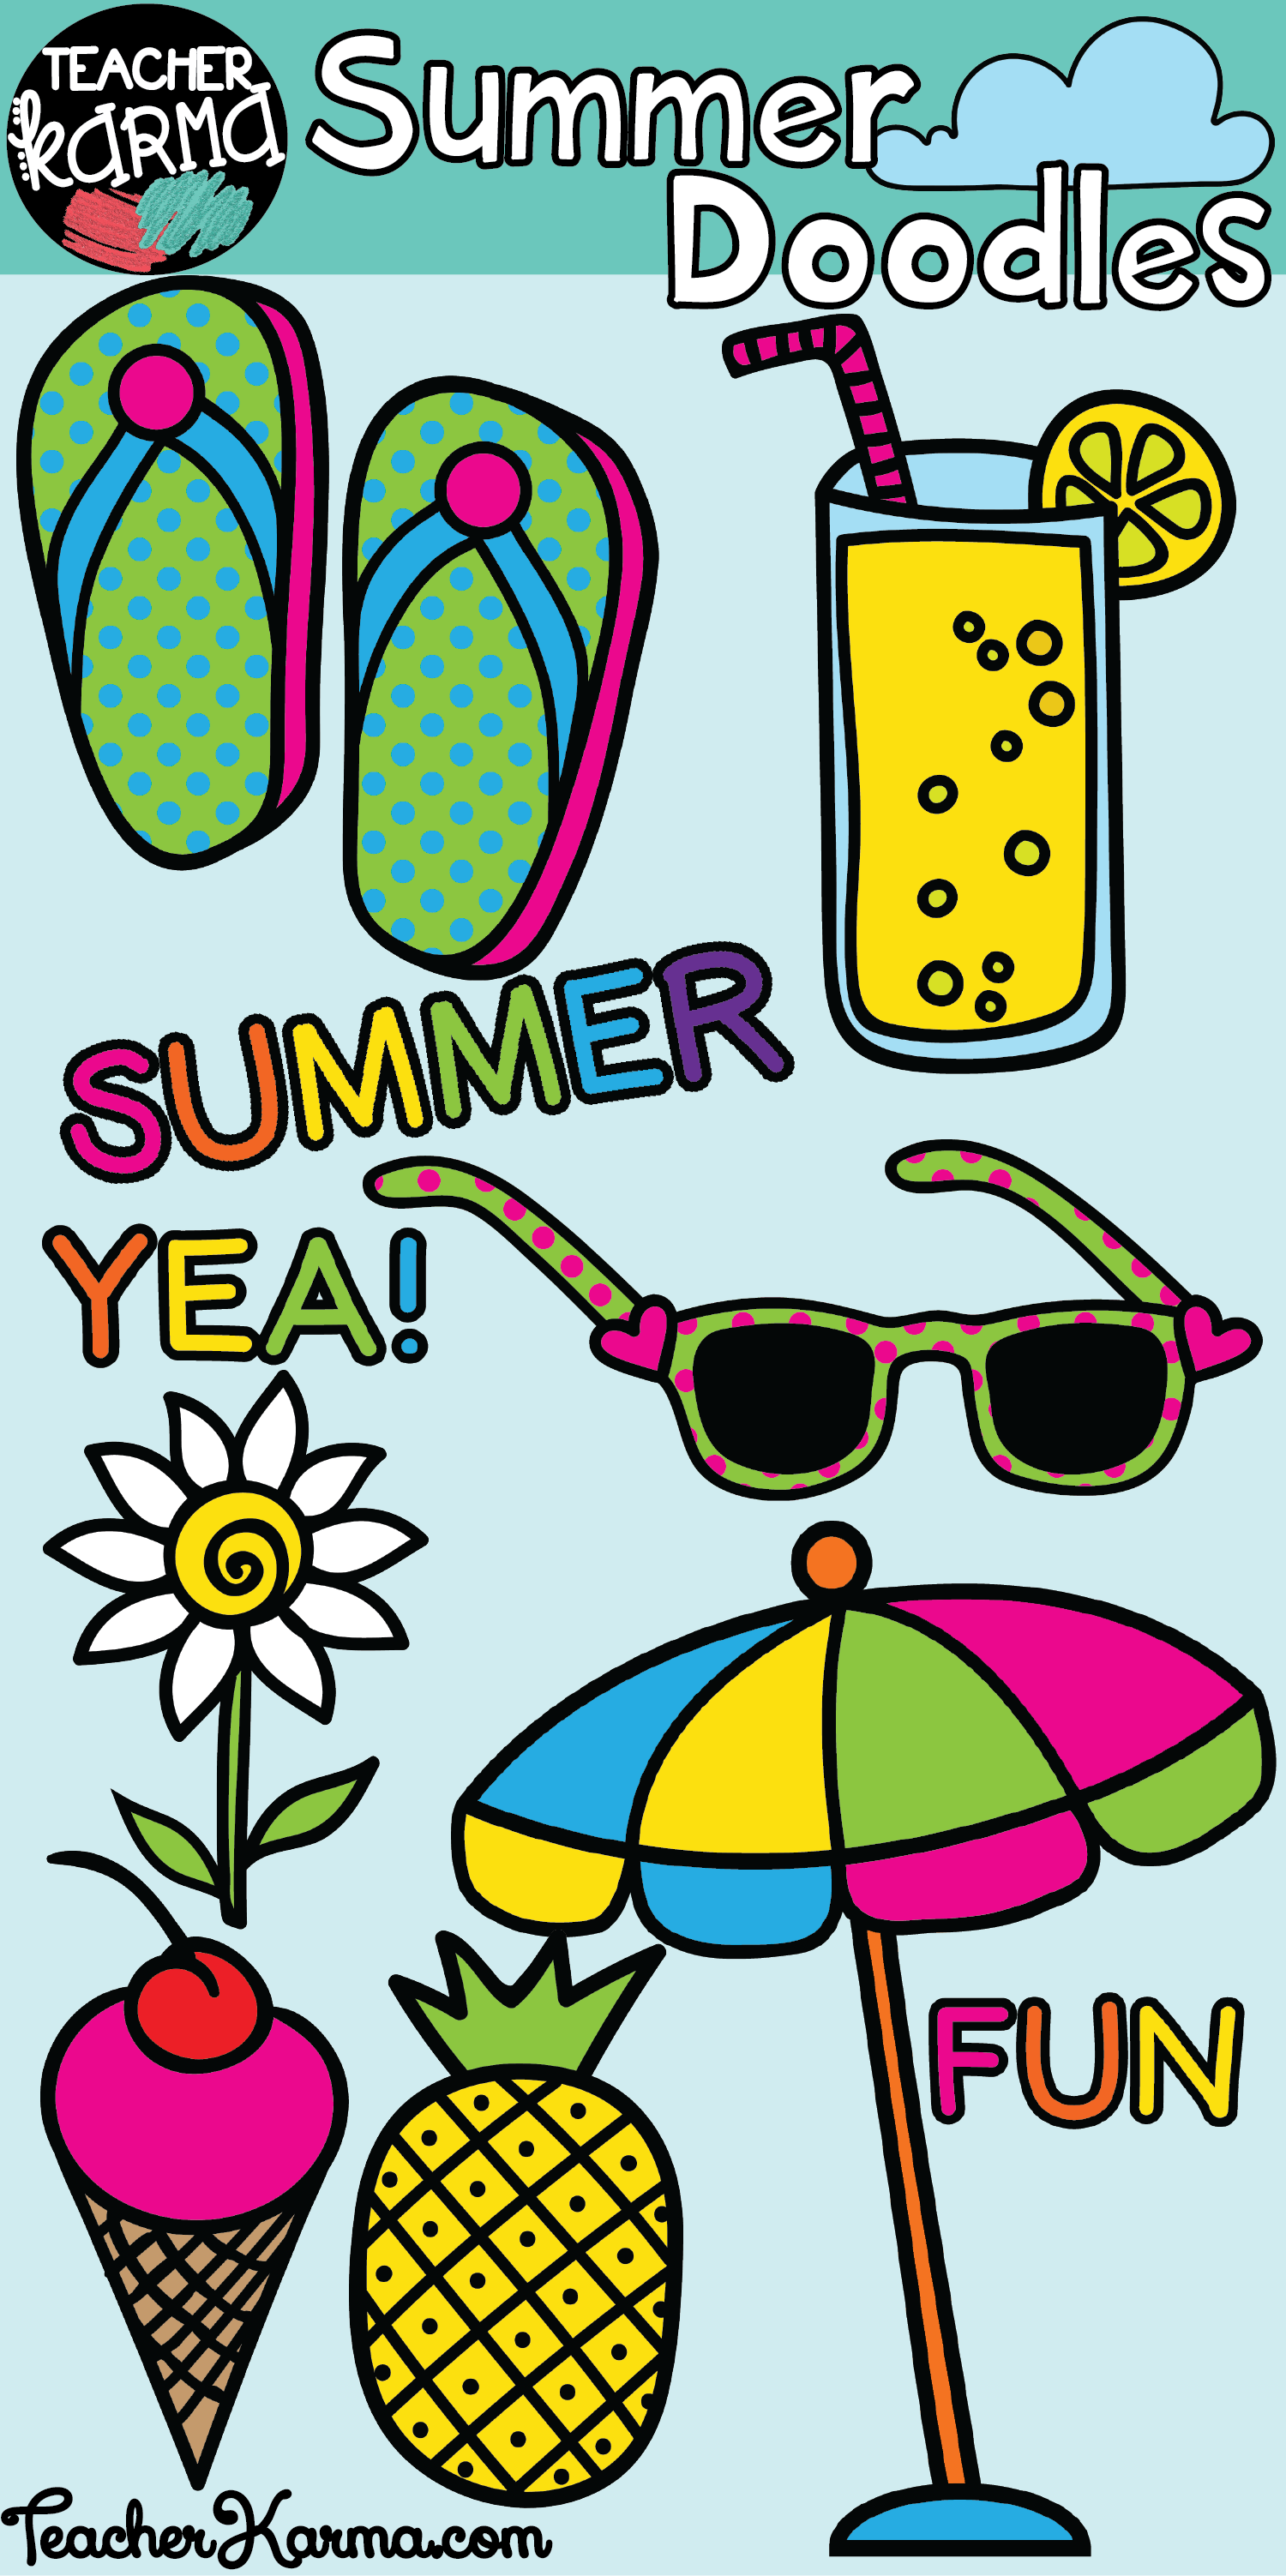 small resolution of summer doodles clipart is perfect for classroom teachers and teachers pay teachers sellers works great for end of year activities teacherkarma com